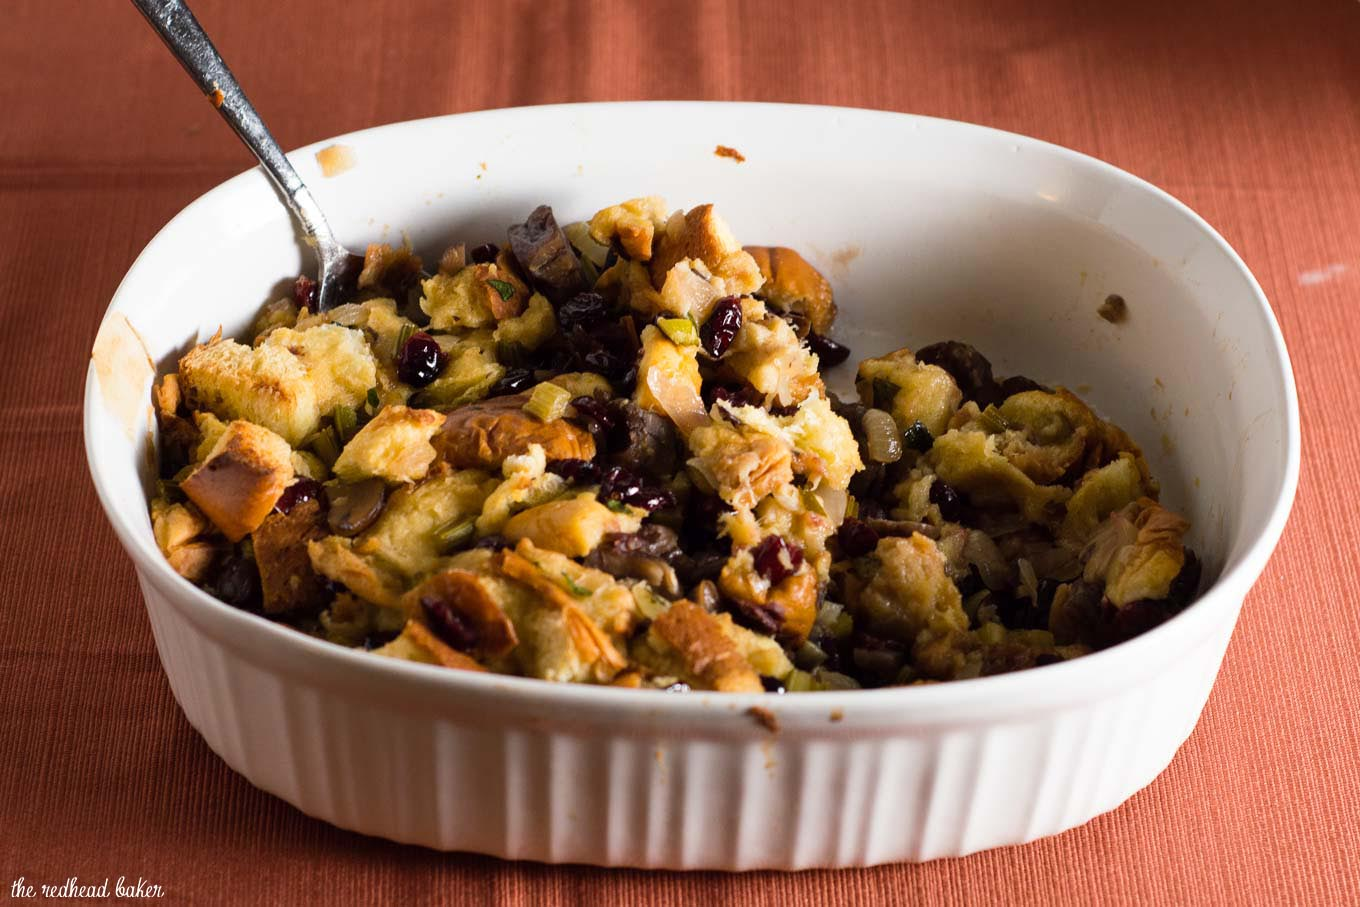 Cranberry Chestnut Brioche Stuffing is a flavorful side dish for your Thanksgiving table. Rich brioche bread is dotted with cranberries and chestnuts.